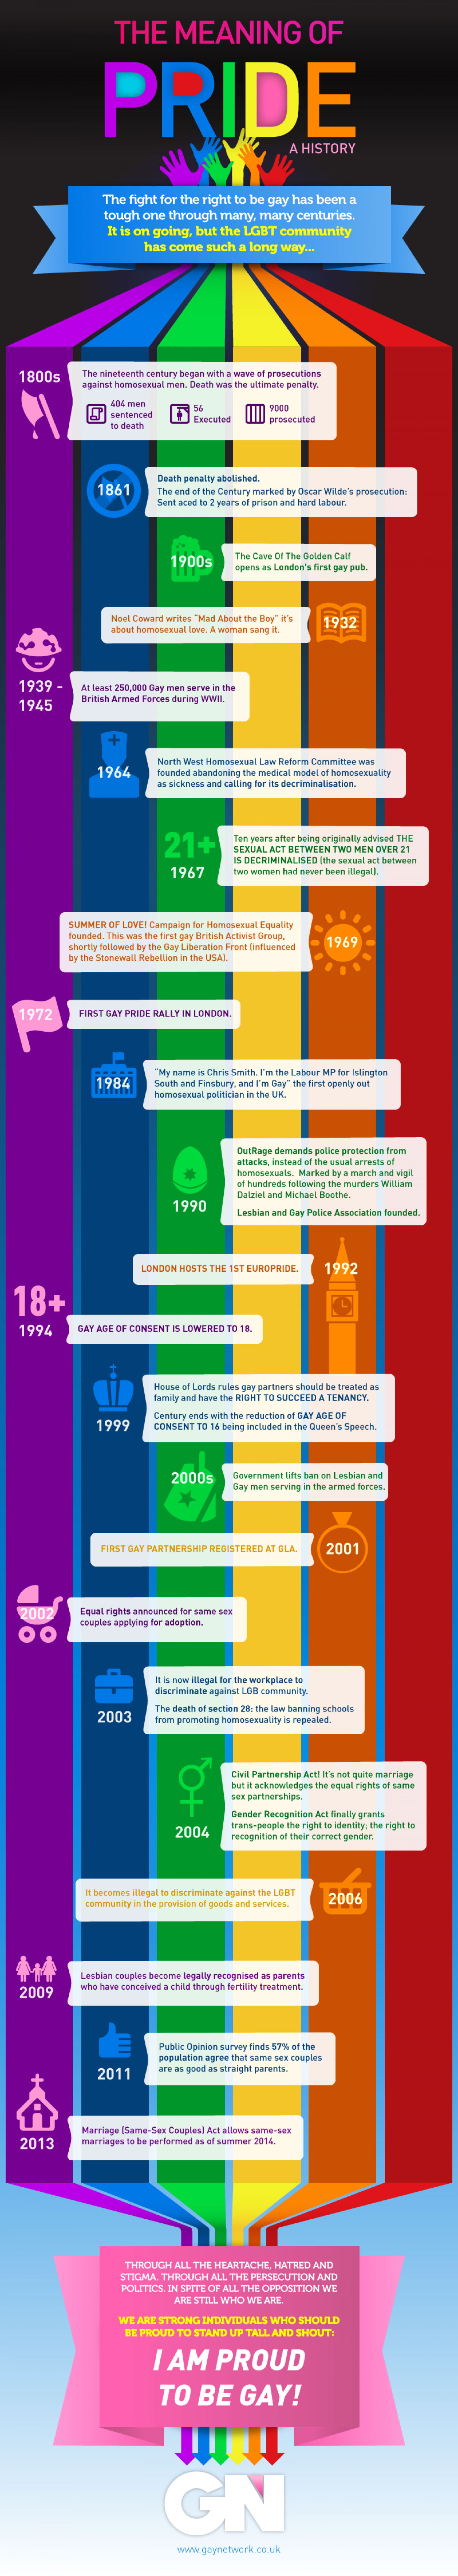 What Does It Mean To Be Proud - A History of Gay Pride Infographic